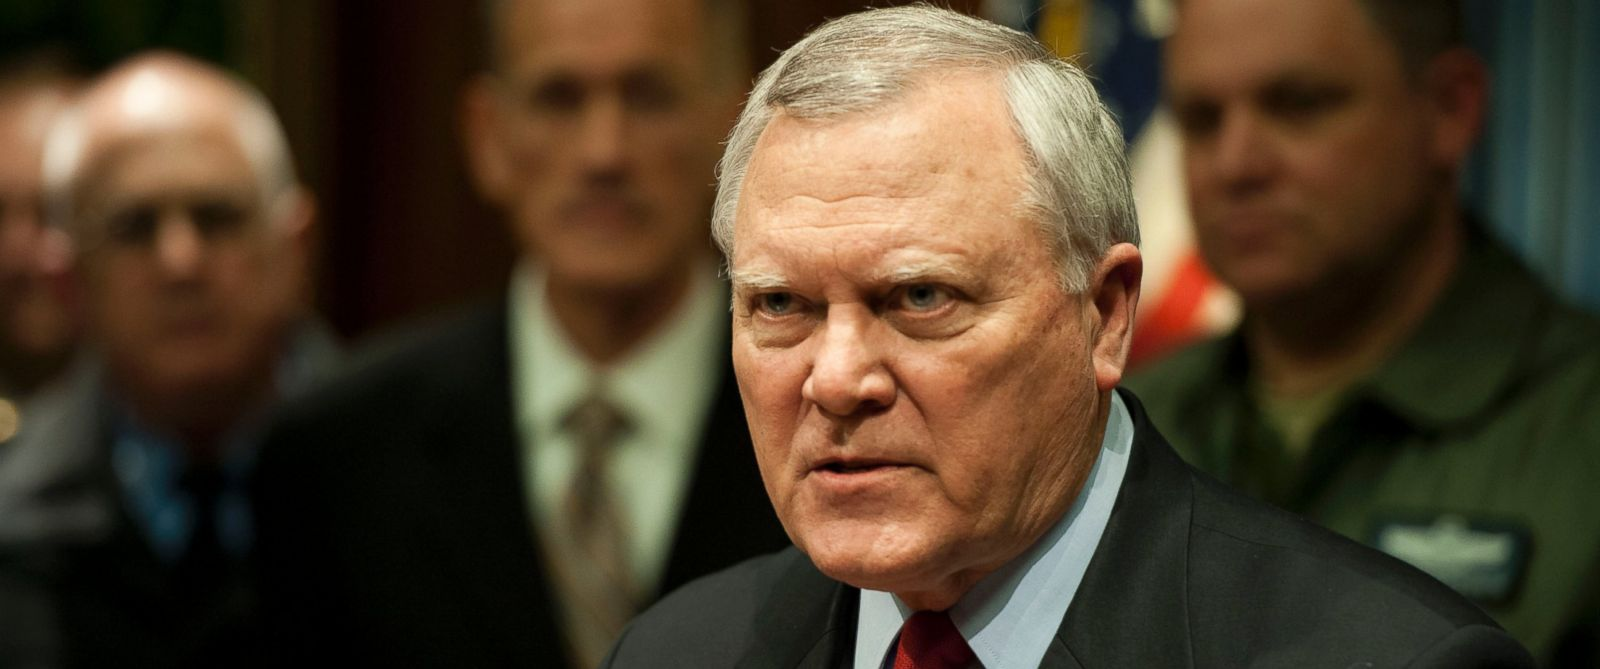 PHOTO: Georgia Gov. Nathan Deal answers questions from the media during a news conference at the Capitol building on Feb. 11, 2014 in Atlanta.